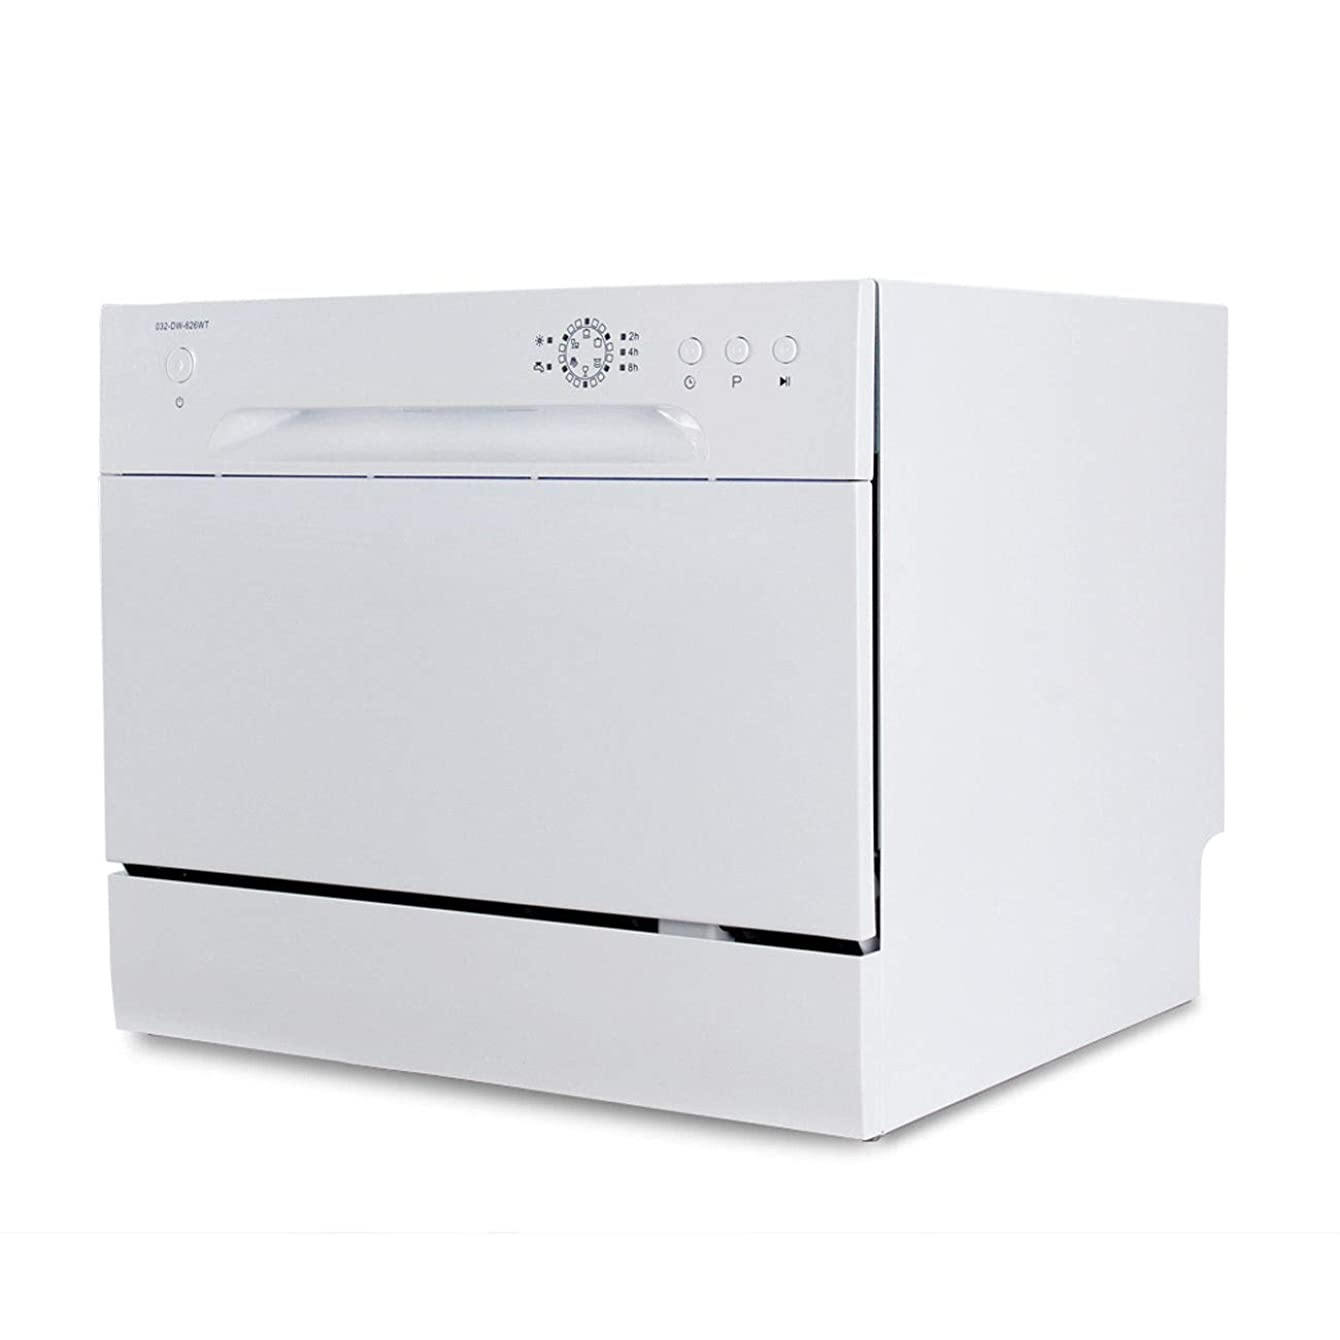 User Friendly Controls, Compact Countertop Mini Compact 6 Place Settings Countertop Dishwasher Stainless Steel, White